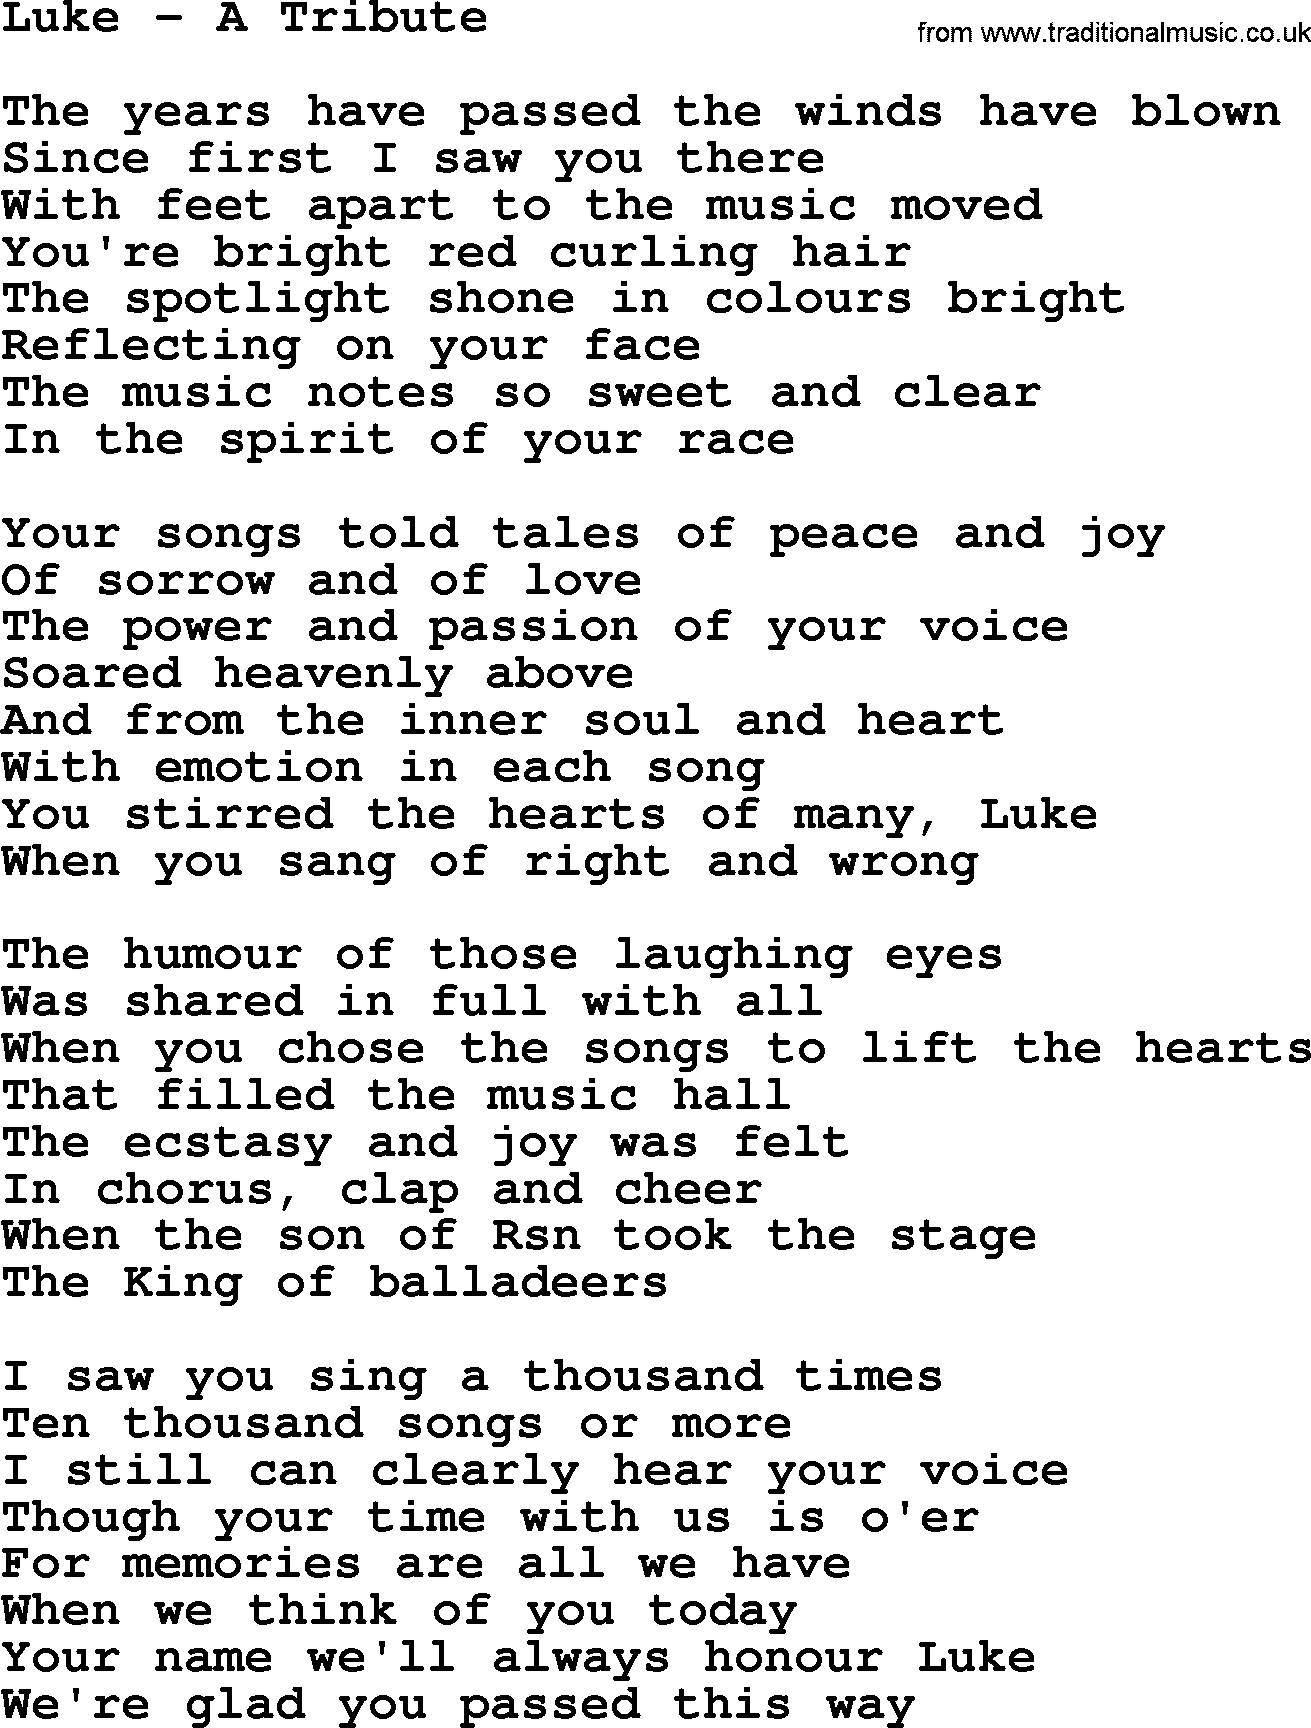 Luke a tribute by the dubliners song lyrics and chords the dubliners song luke a tribute lyrics hexwebz Image collections